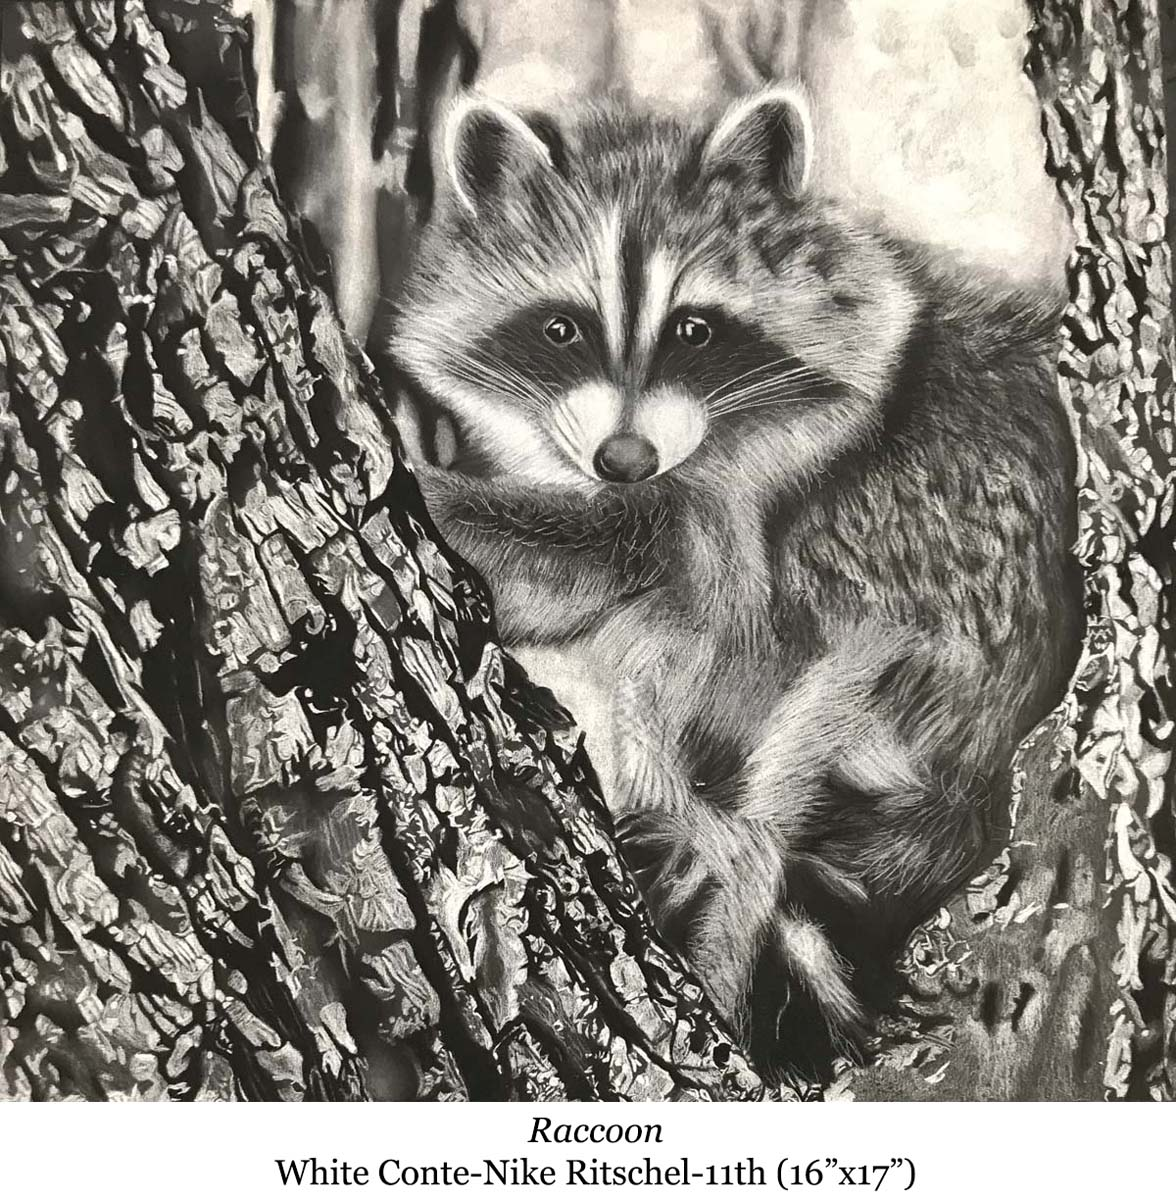 1587093404-raccoon-white_conte-nike_ritschel-11th__16_x17__